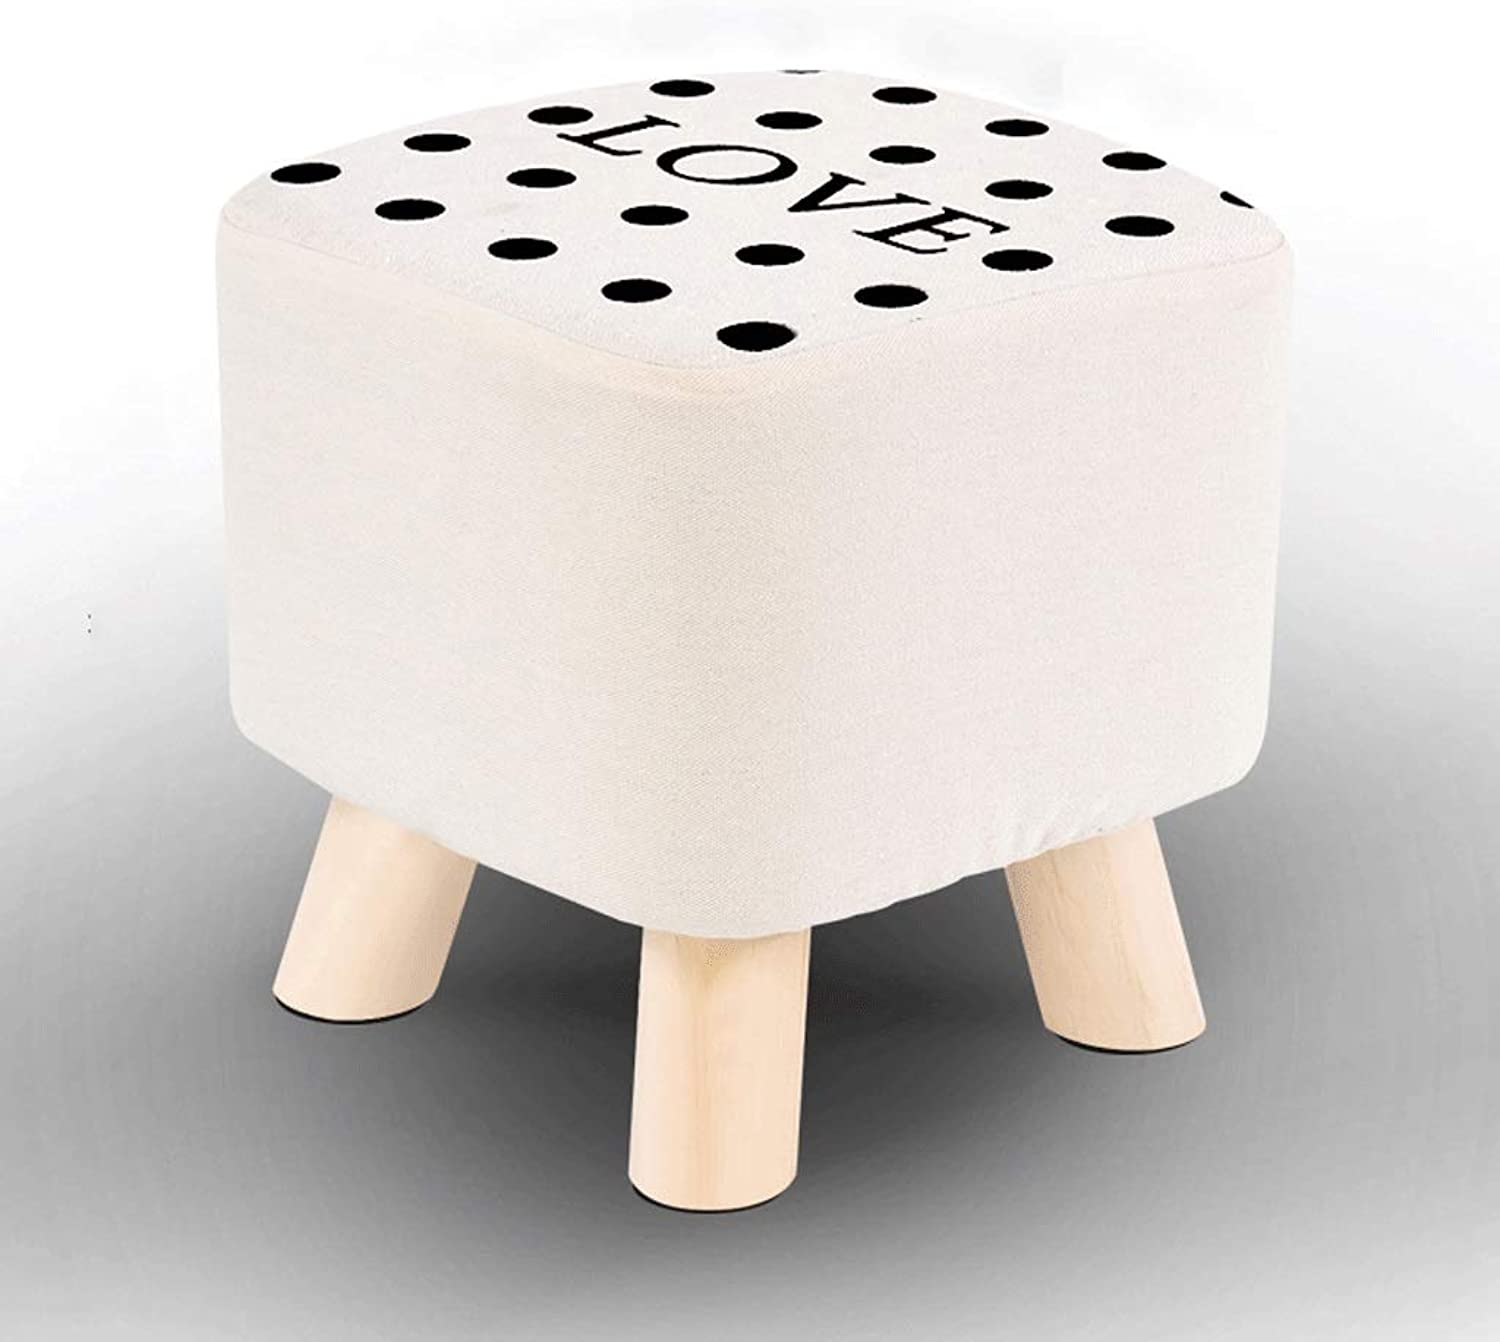 Solid Wood Stool Home Versatile Can Change shoes Stool High Elastic Sponge Cushion Detachable Seat Cover Beech Small Stool (color   H, Size   25CM×28CM)